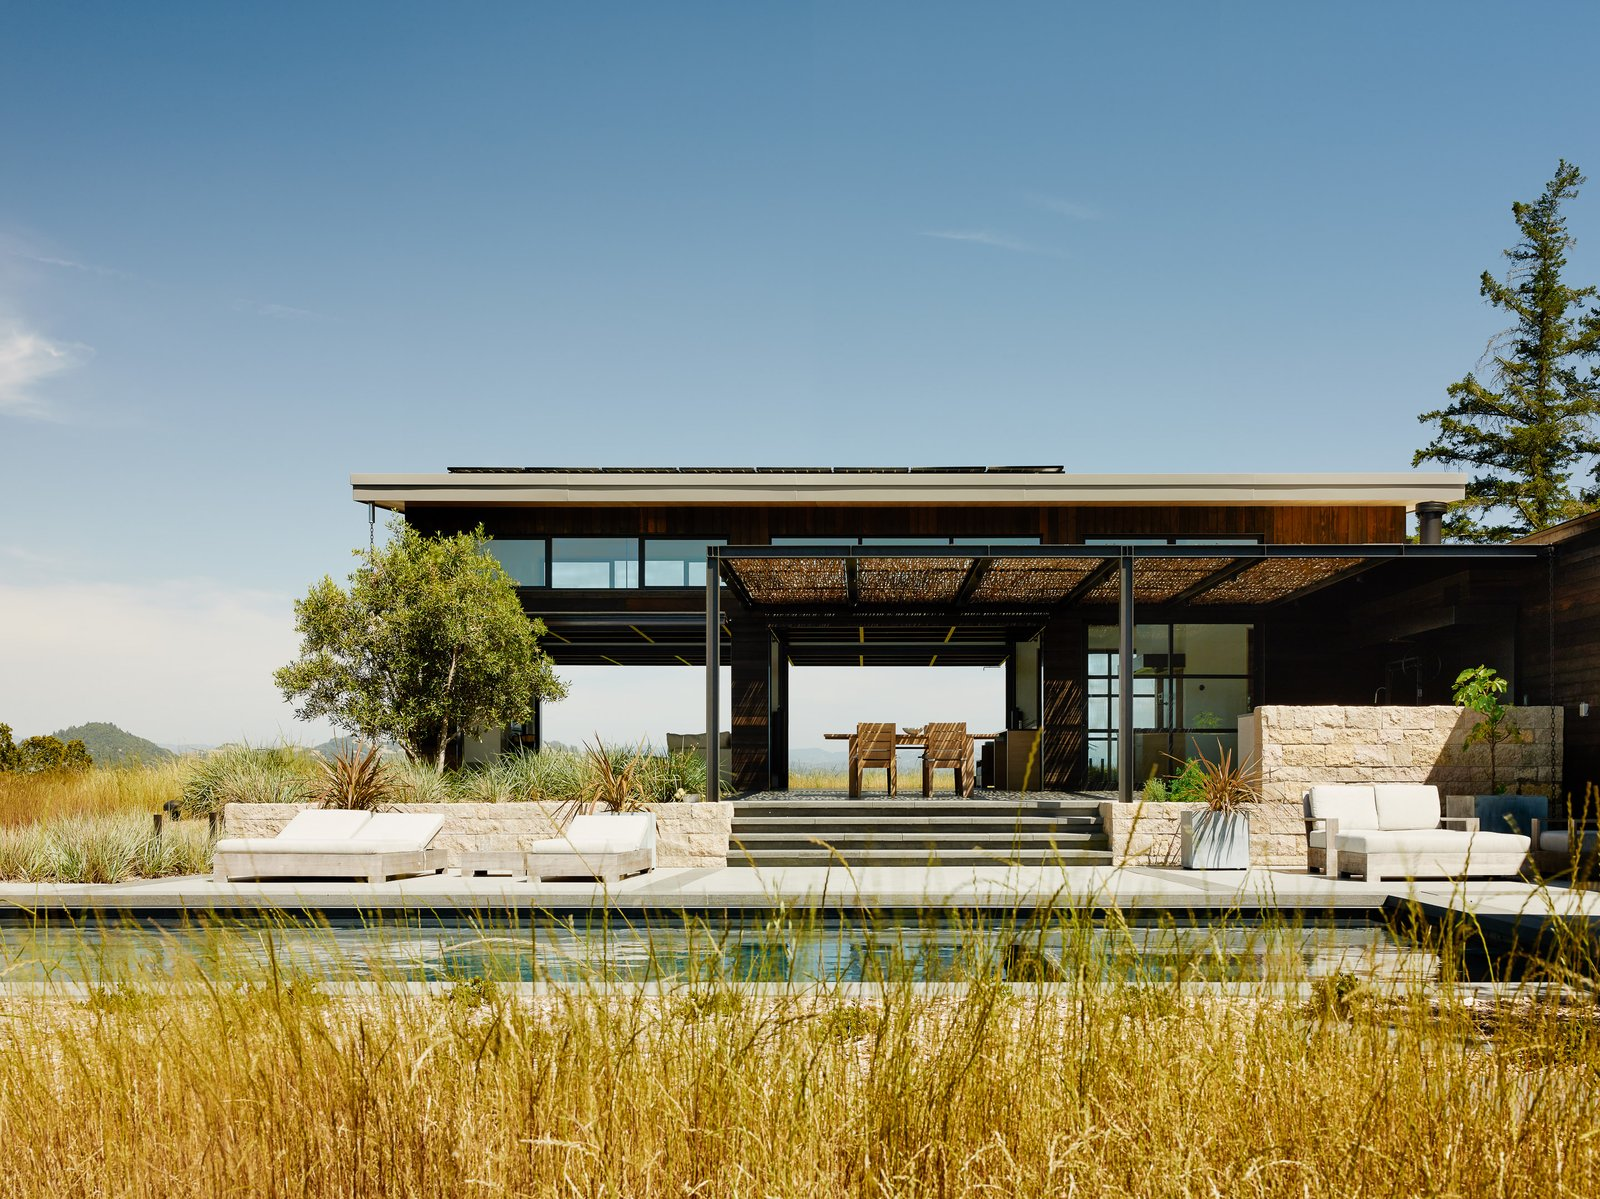 Articles about 7 indoor outdoor homes northern california on Dwell.com